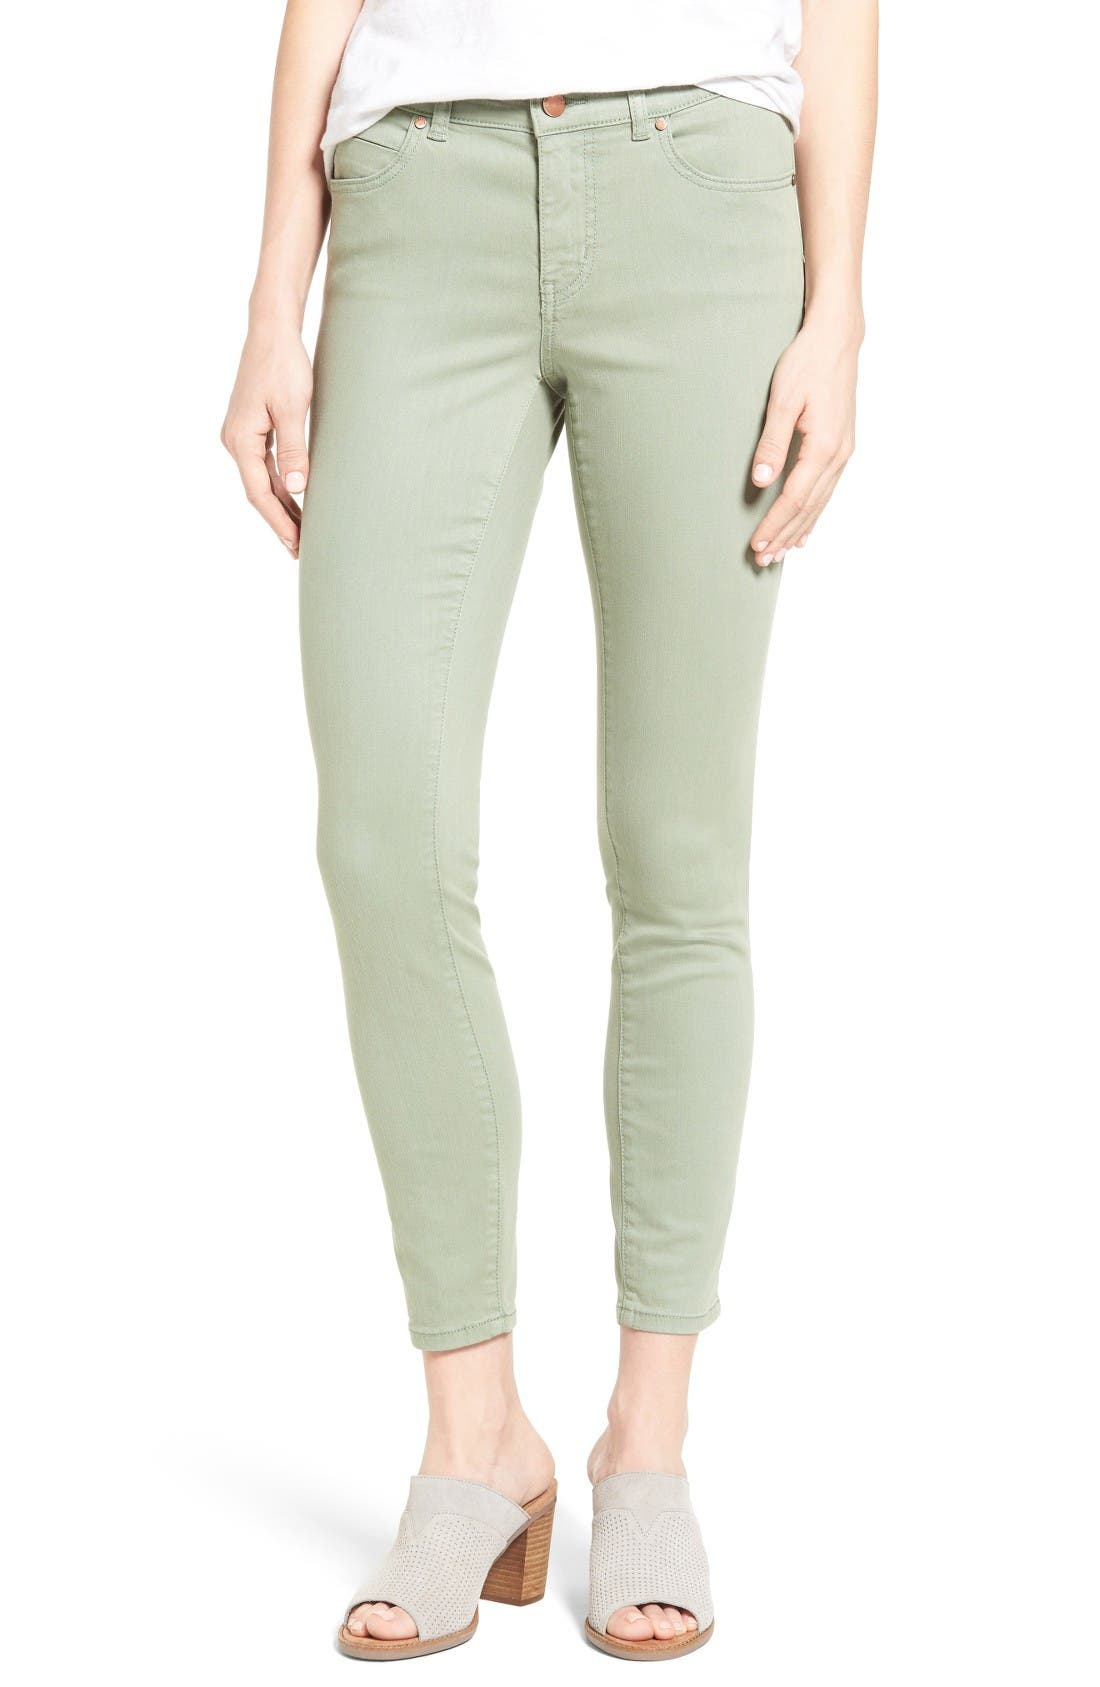 Alternate Image 1 Selected - Caslon® Stretch Ankle Skinny Pants (Regular & Petite)